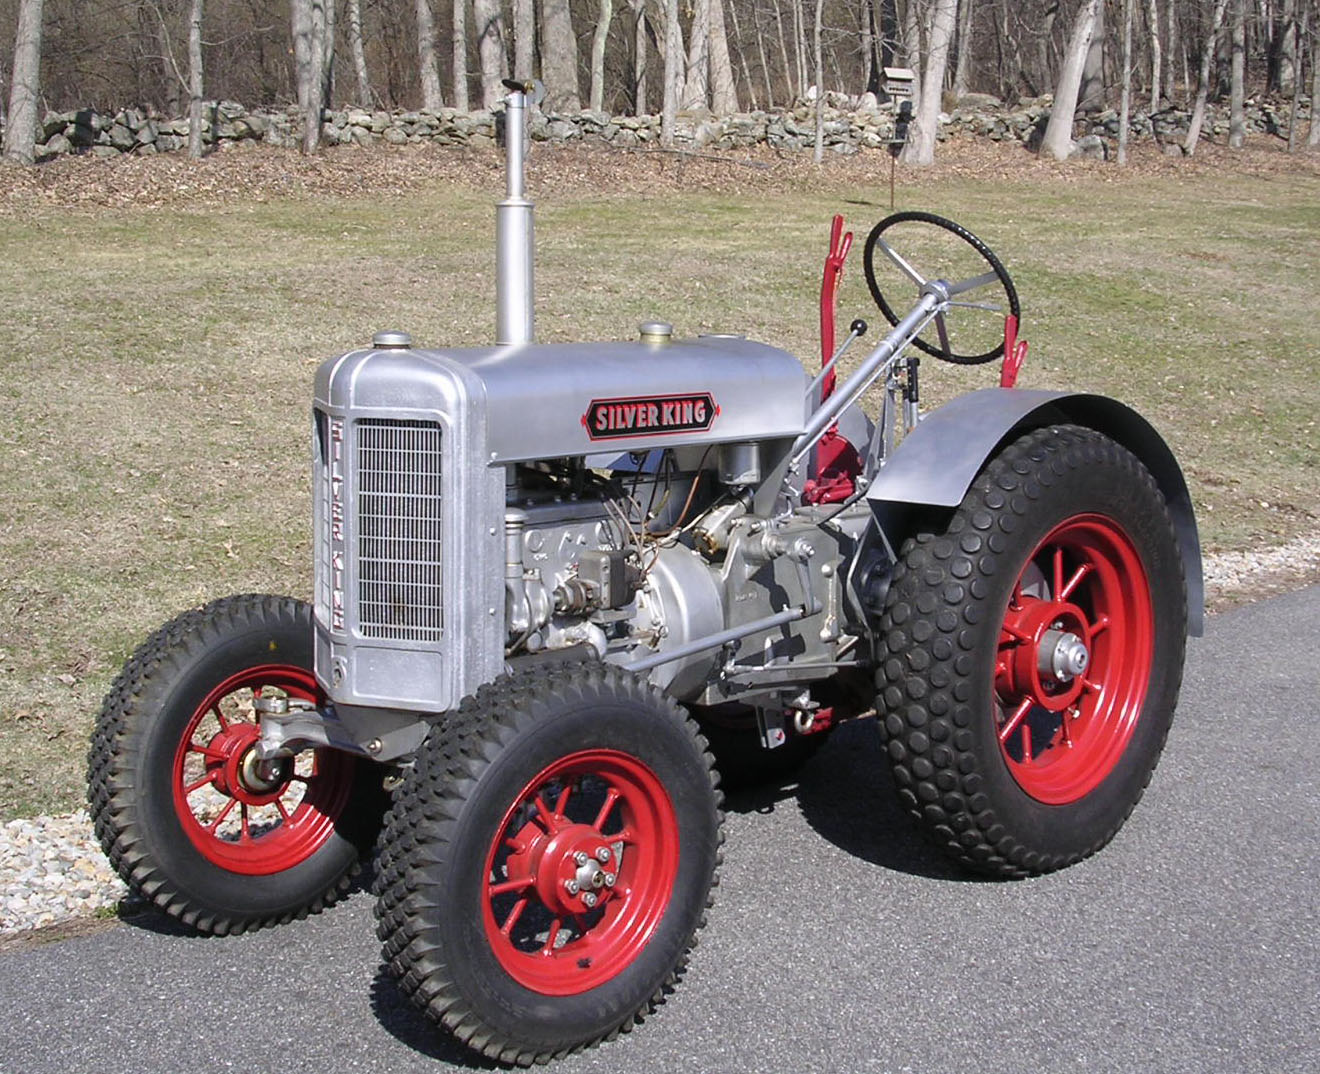 RESTORATION OF A 1935 SILVER KING TRACTOR